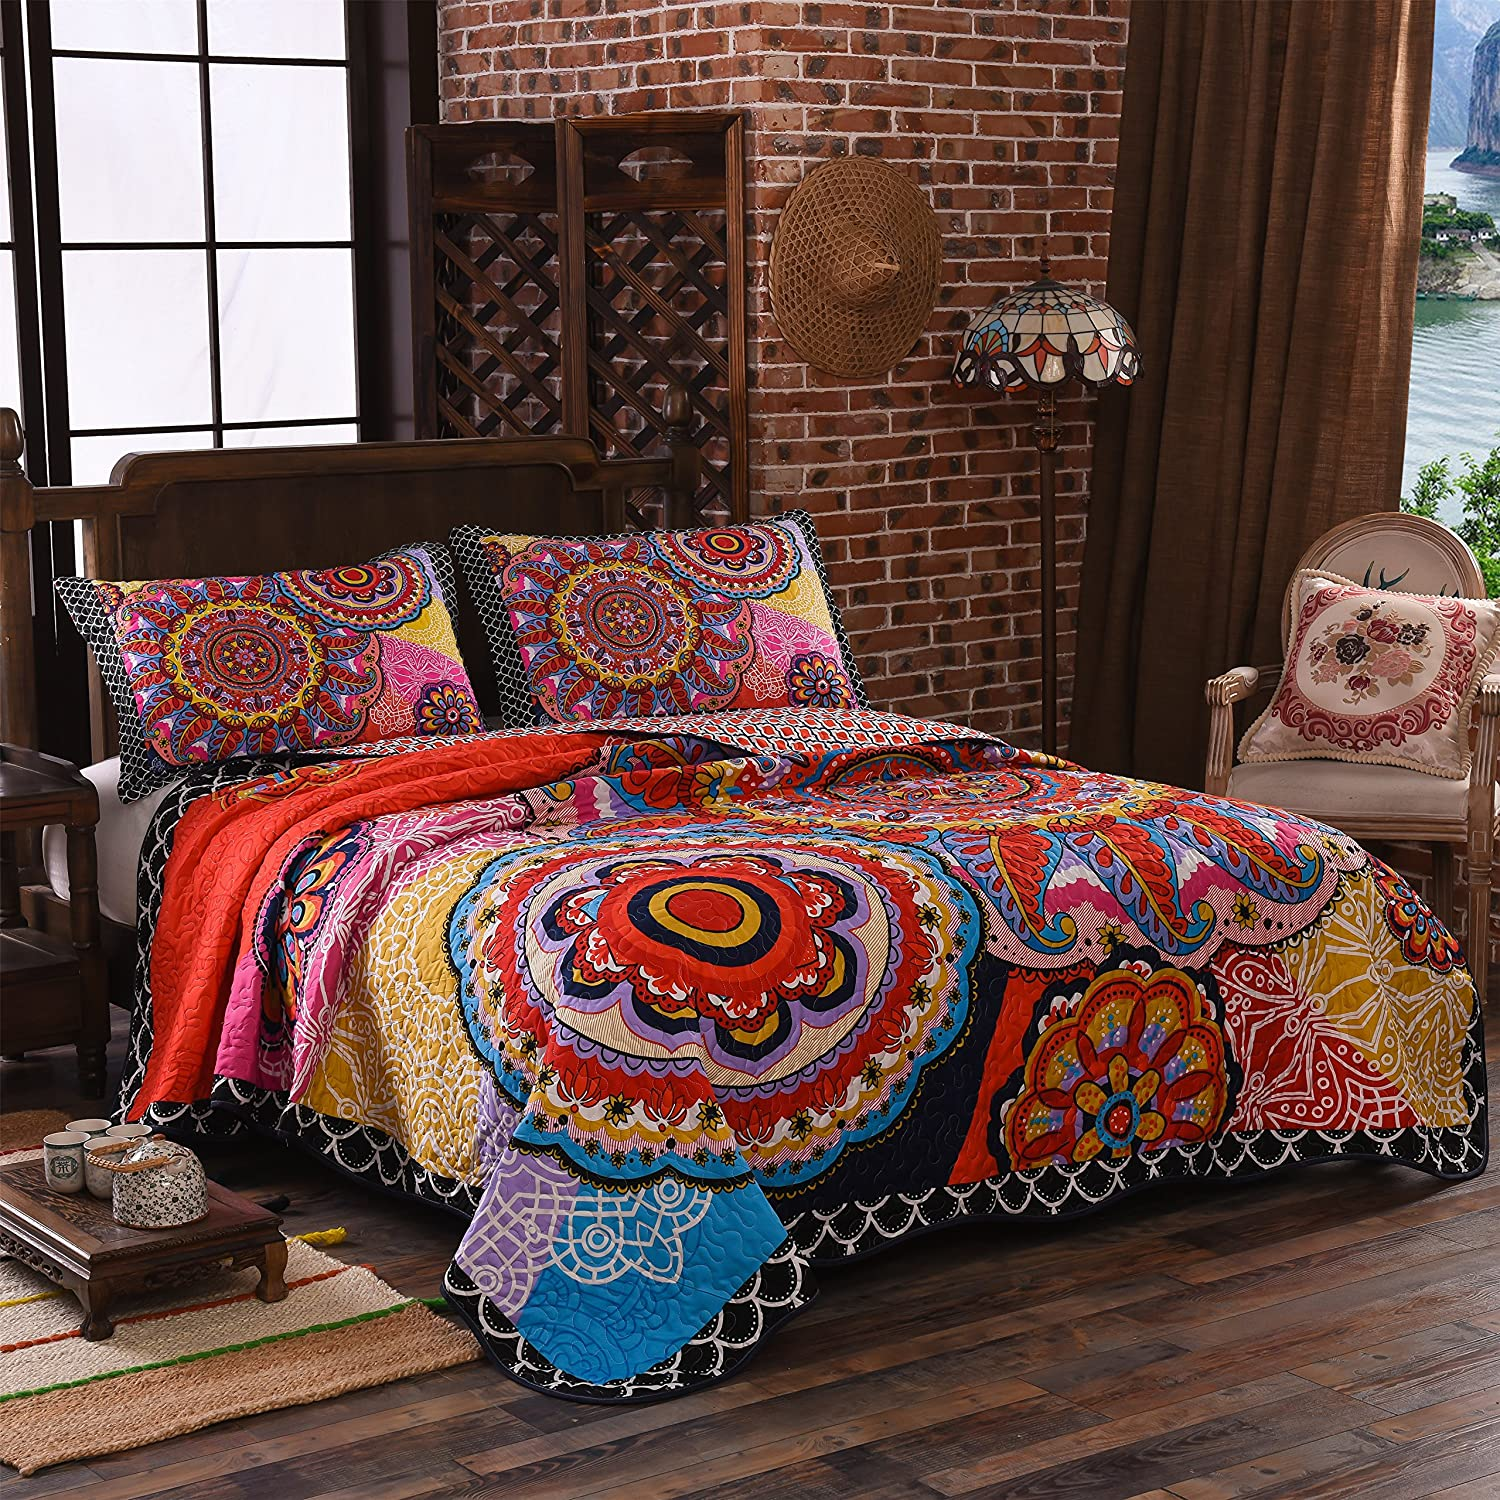 LAMEJOR Quilt Set Queen Size Tropical Bohemian Pattern Reversible Comforter Set 3-Piece Bedspread Coverlet Set Microfiber color orange